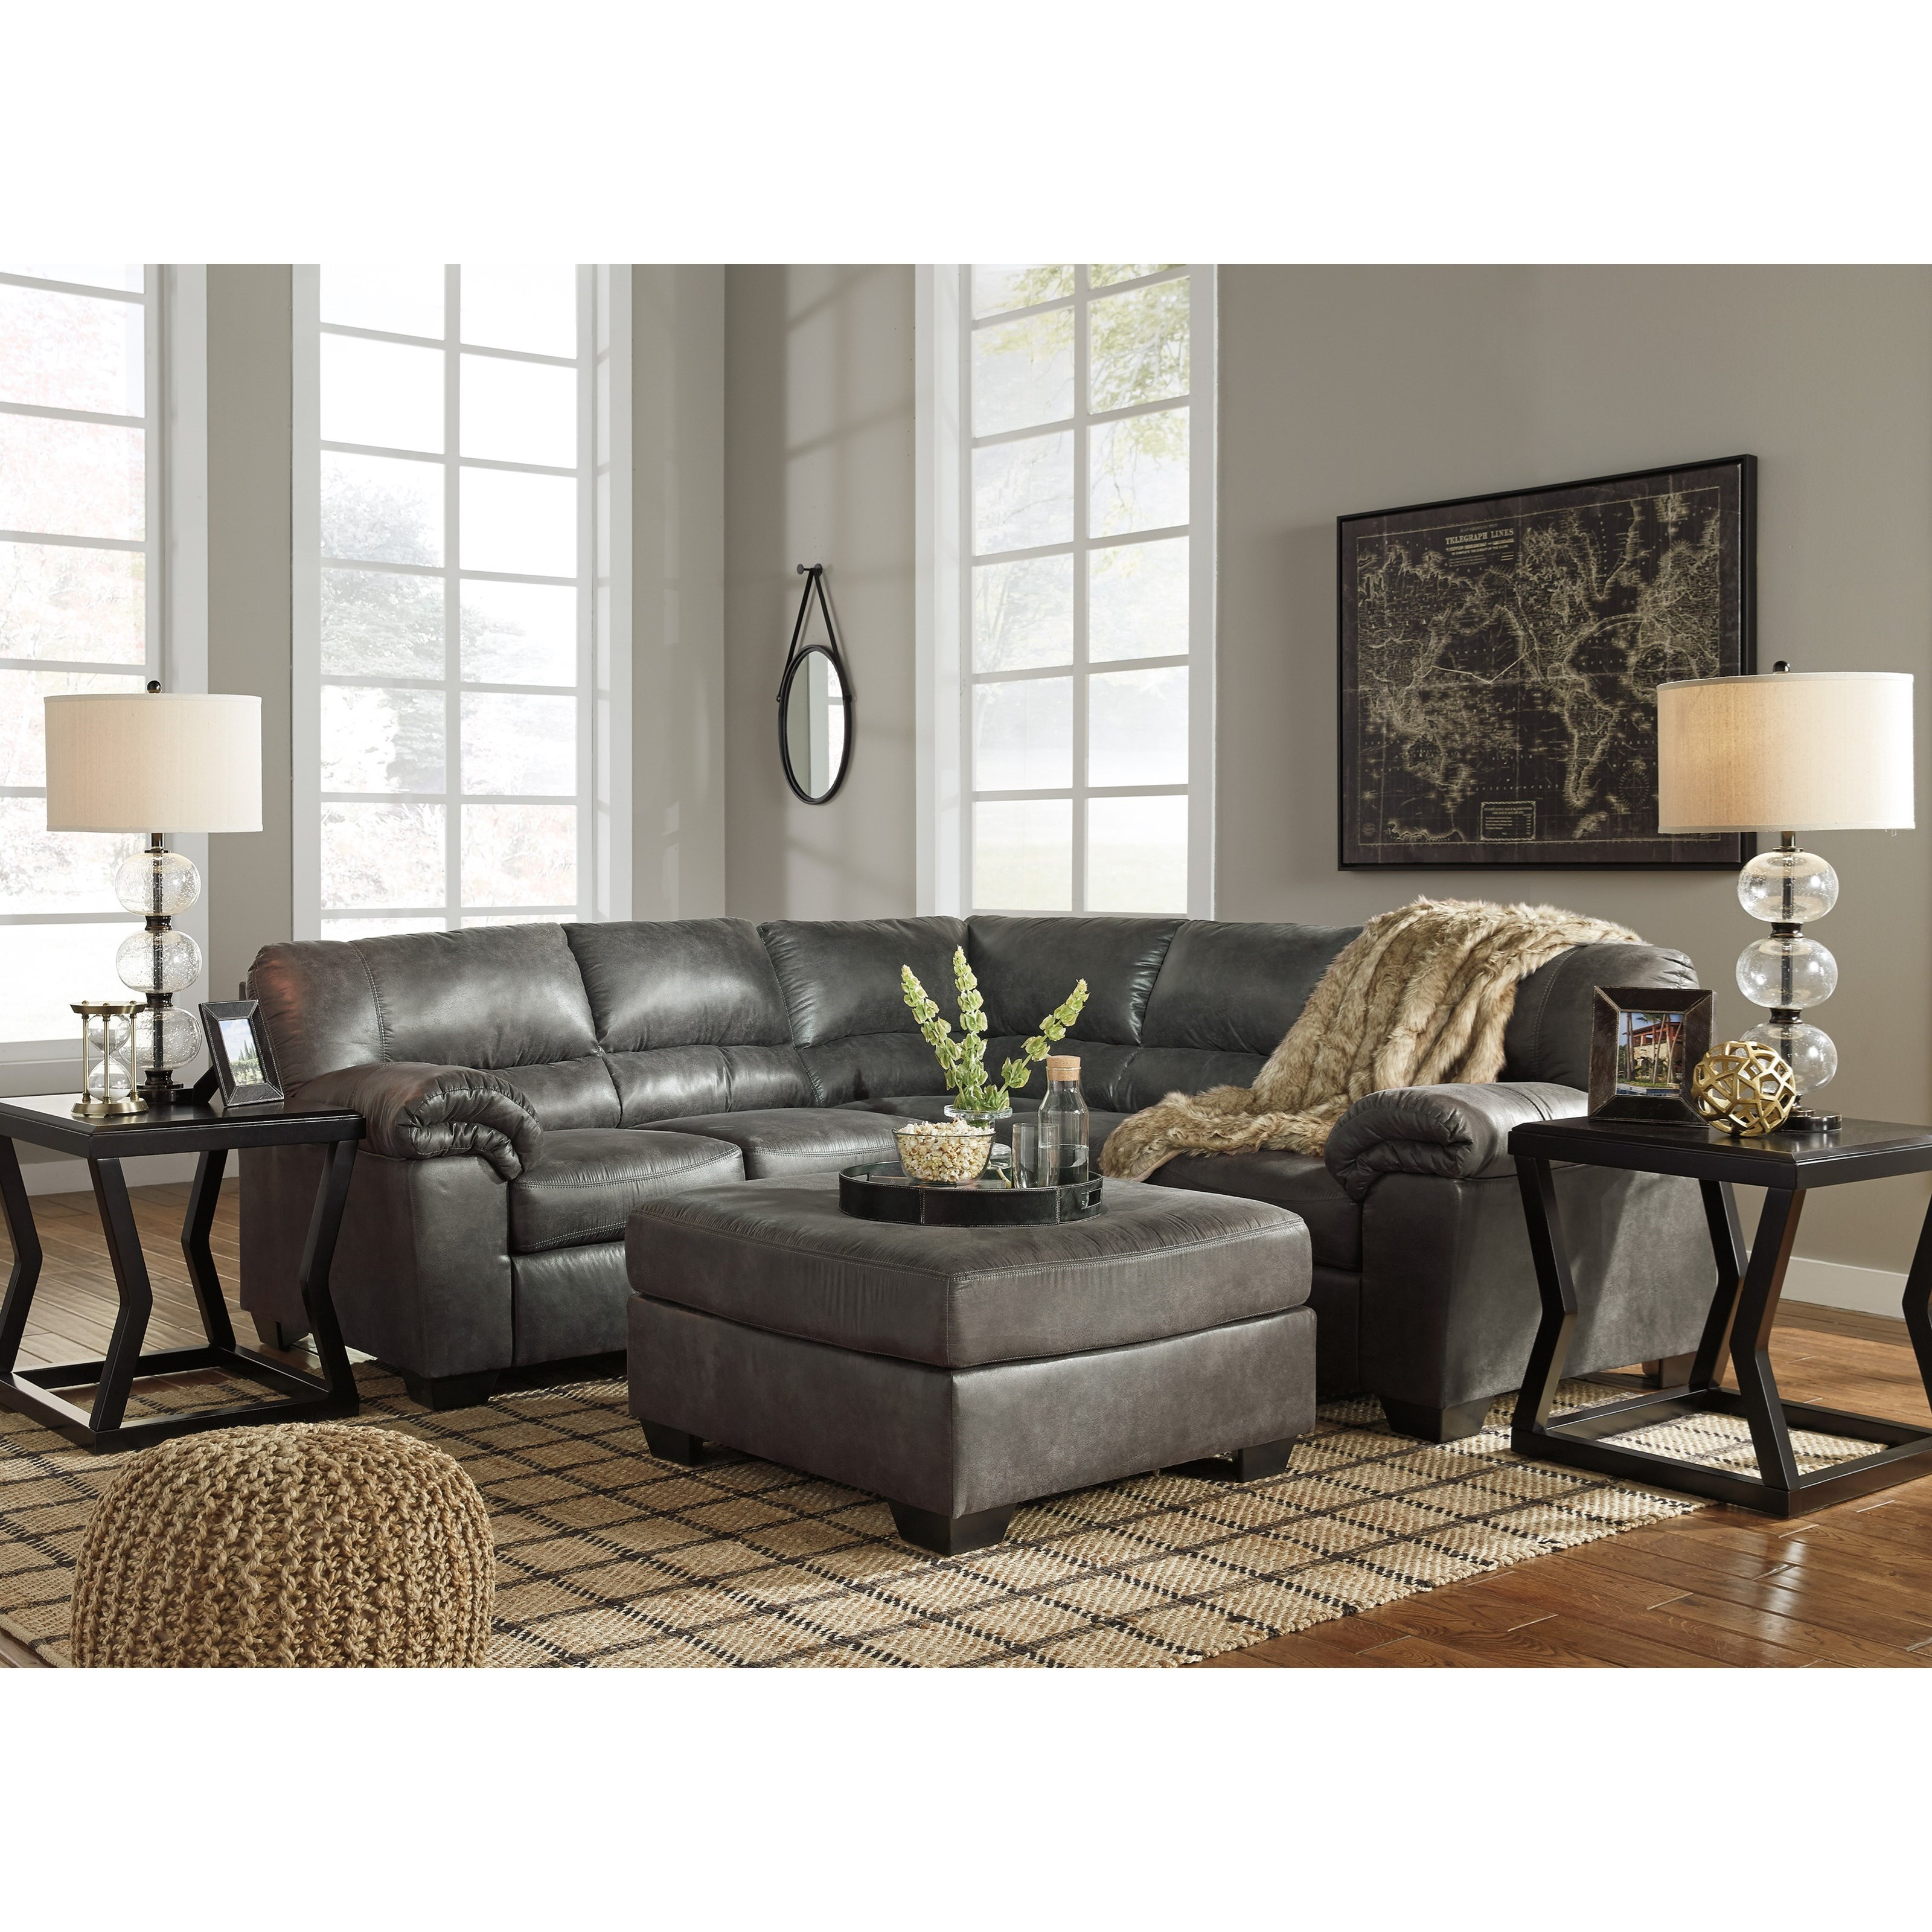 Signature Design By Ashley Bladen 2-Piece Faux Leather